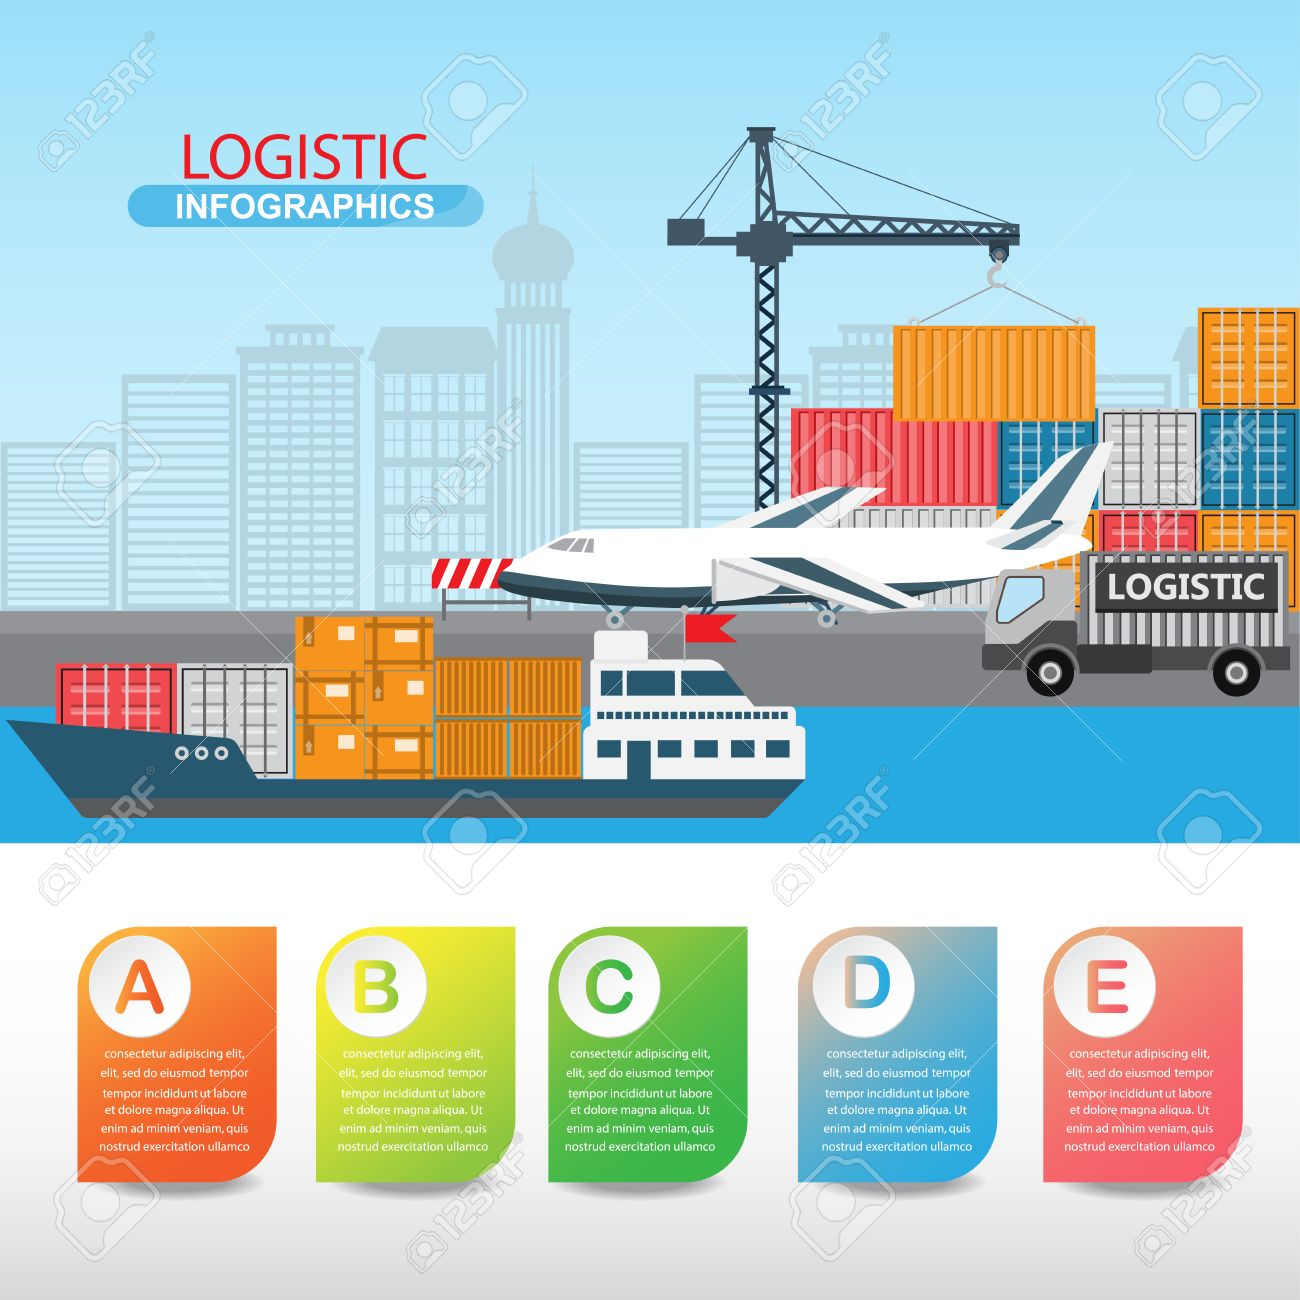 logistic infographics there are sea shipment truck and air